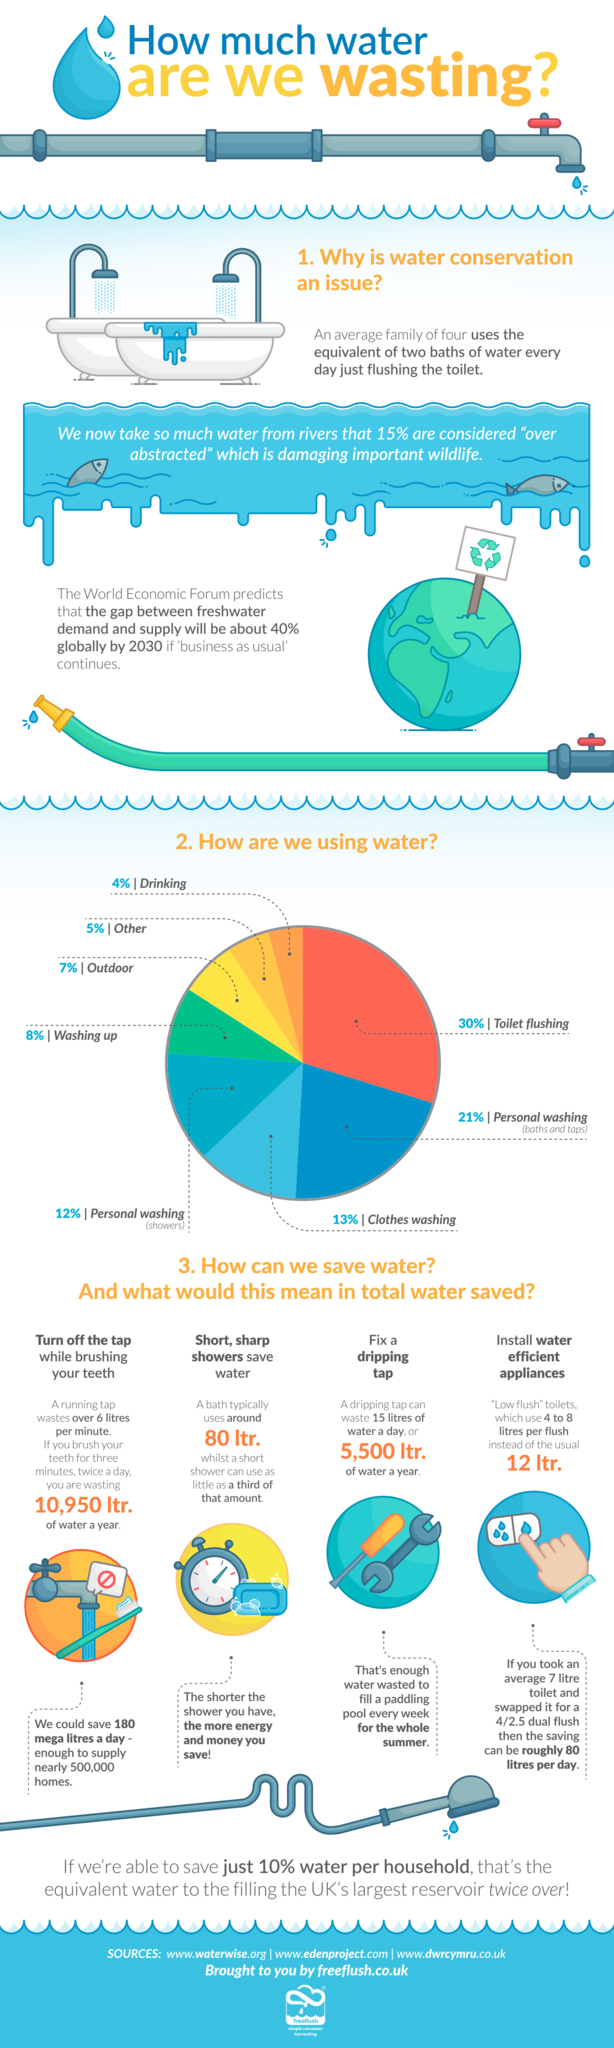 Shocking Wastage Of Water! - Infographic